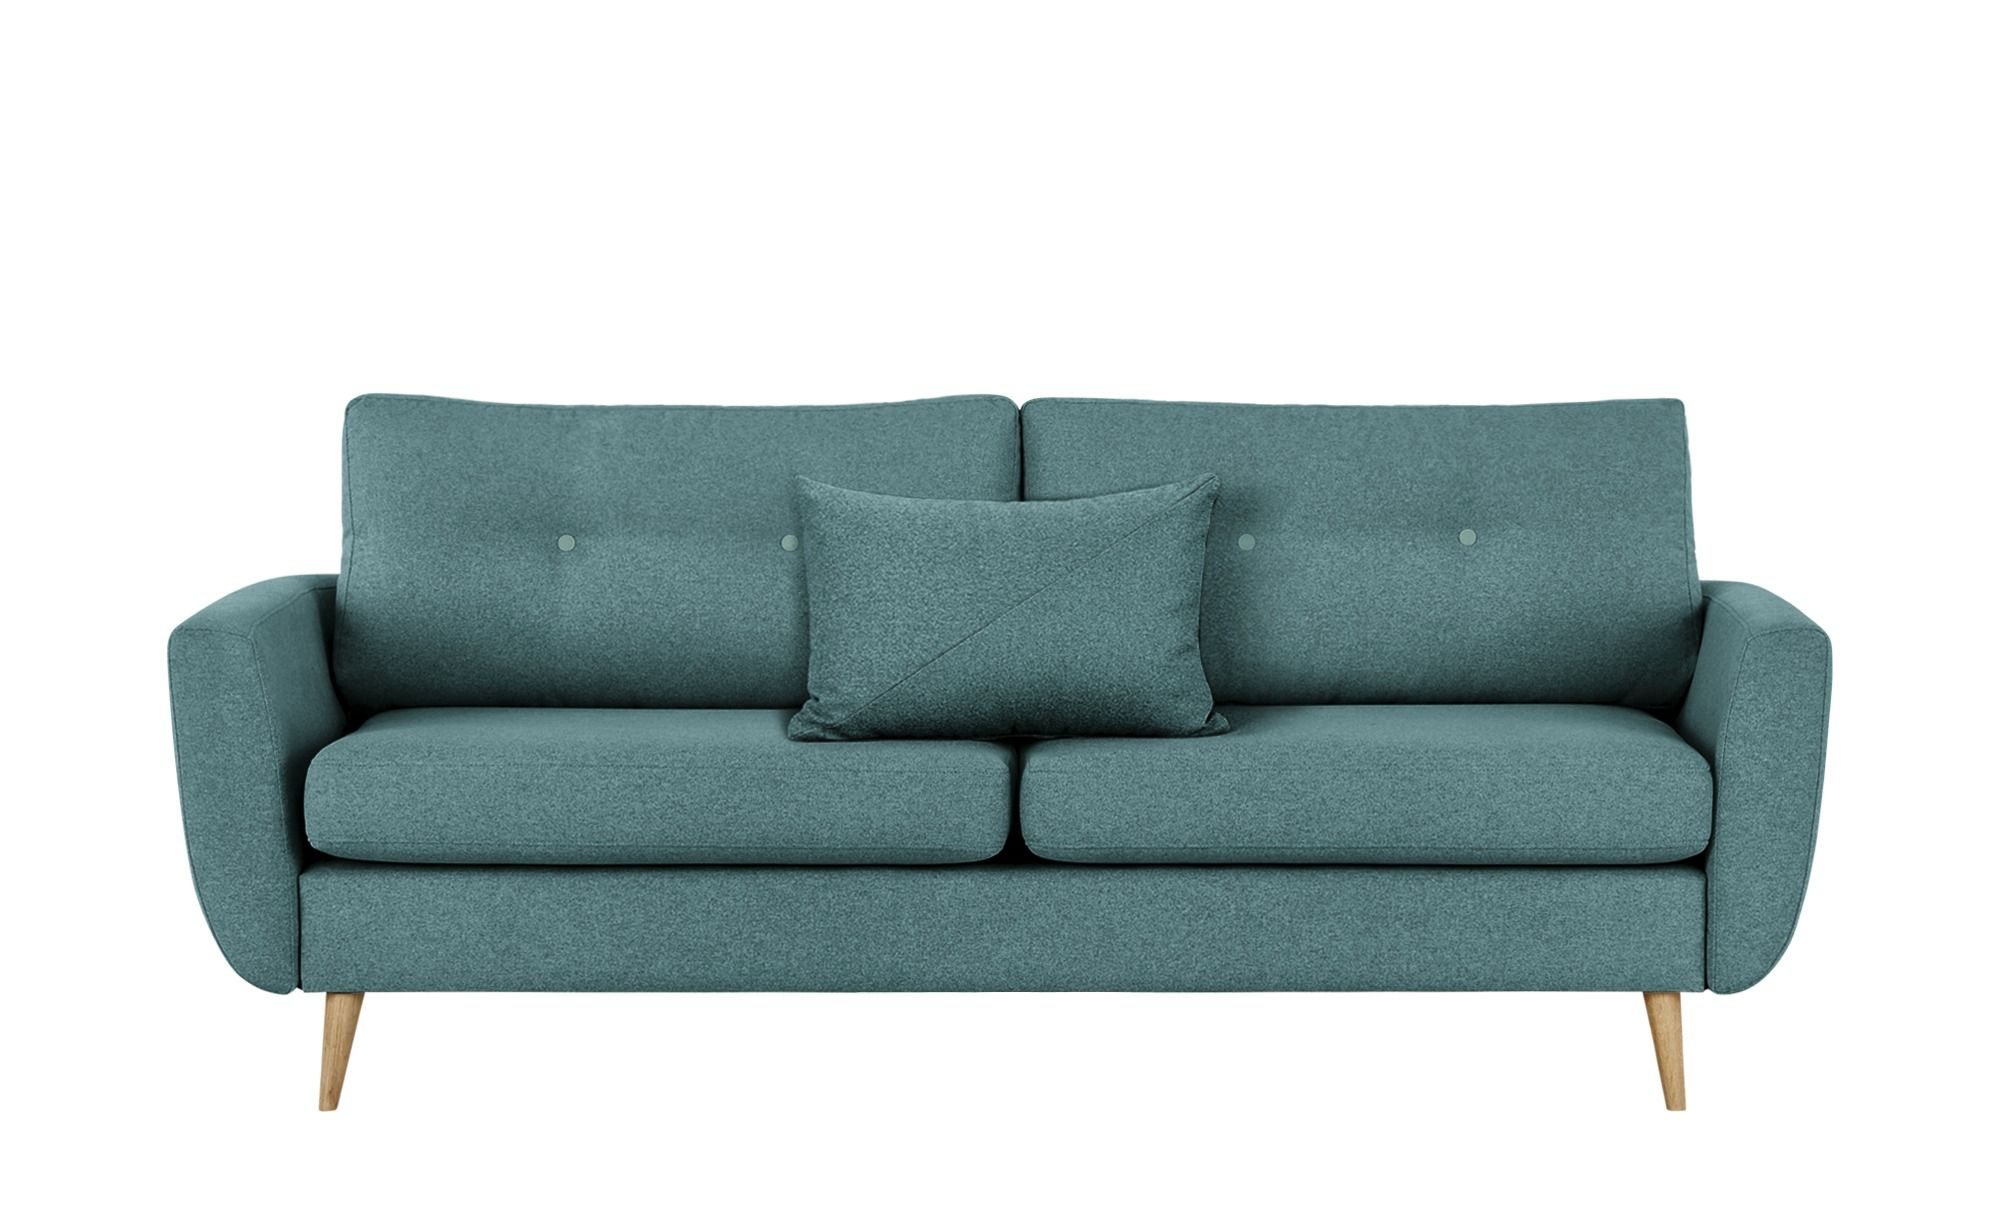 Finya Sofa Petrol Webstoff Harris In 2019 Products Retro Sofa